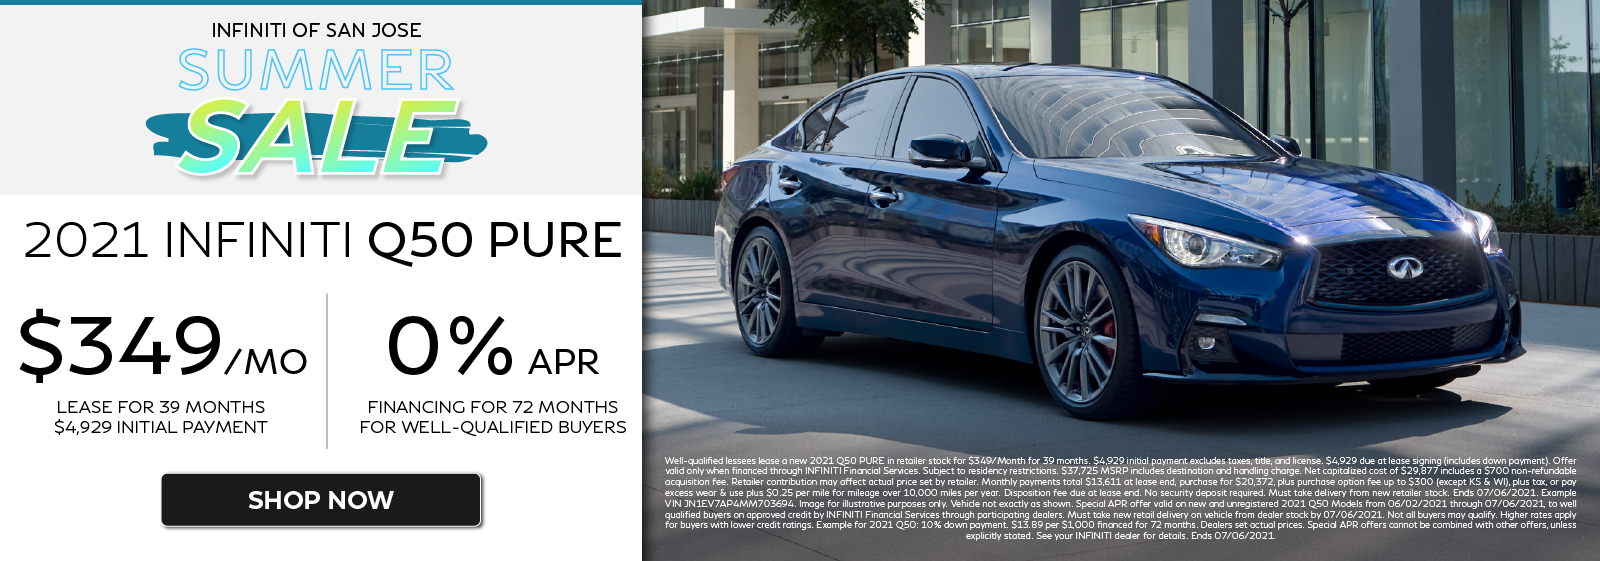 2021 Q50 Lease and APR Pure Offers. Click to shop now.